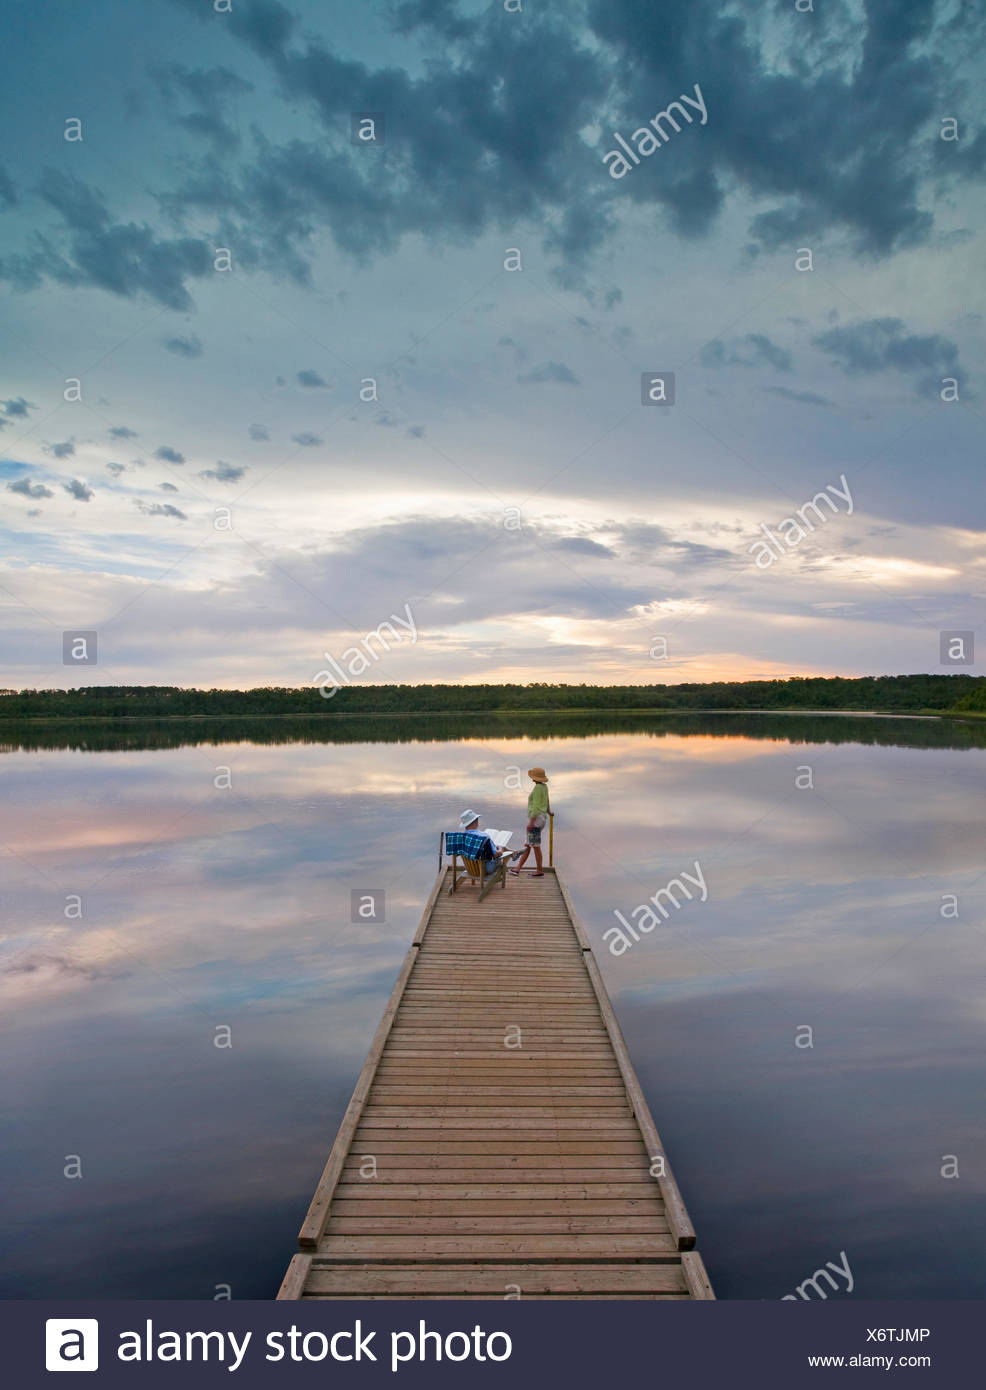 A couple, man and woman sitting at the end of a long wooden dock reaching out into a calm lake, at sunset. - Stock Image